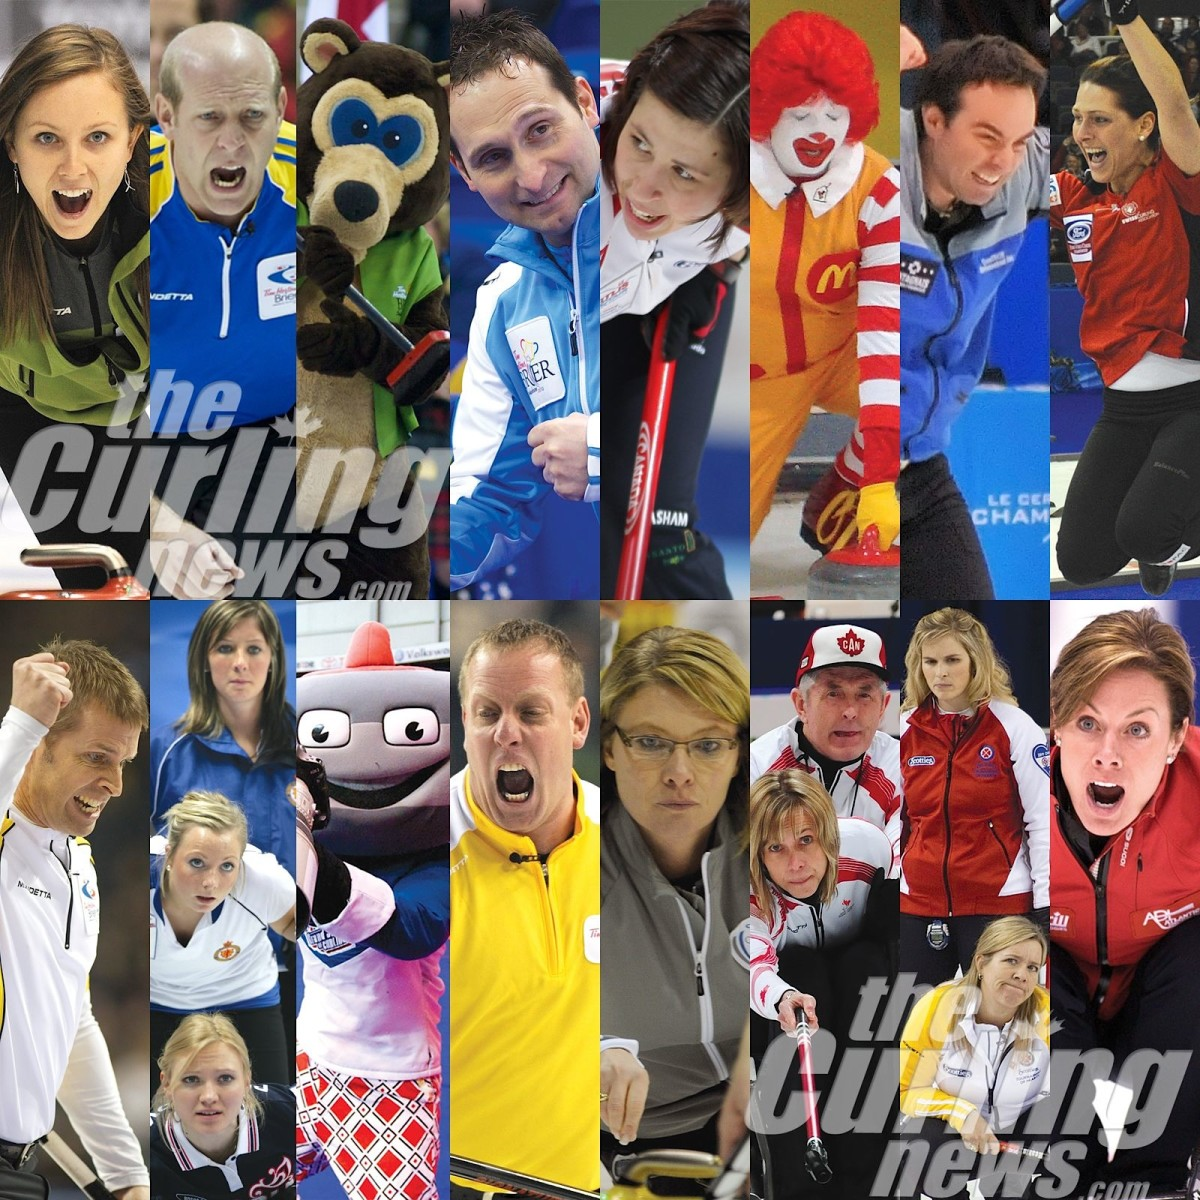 So many curling faces... so little contest time